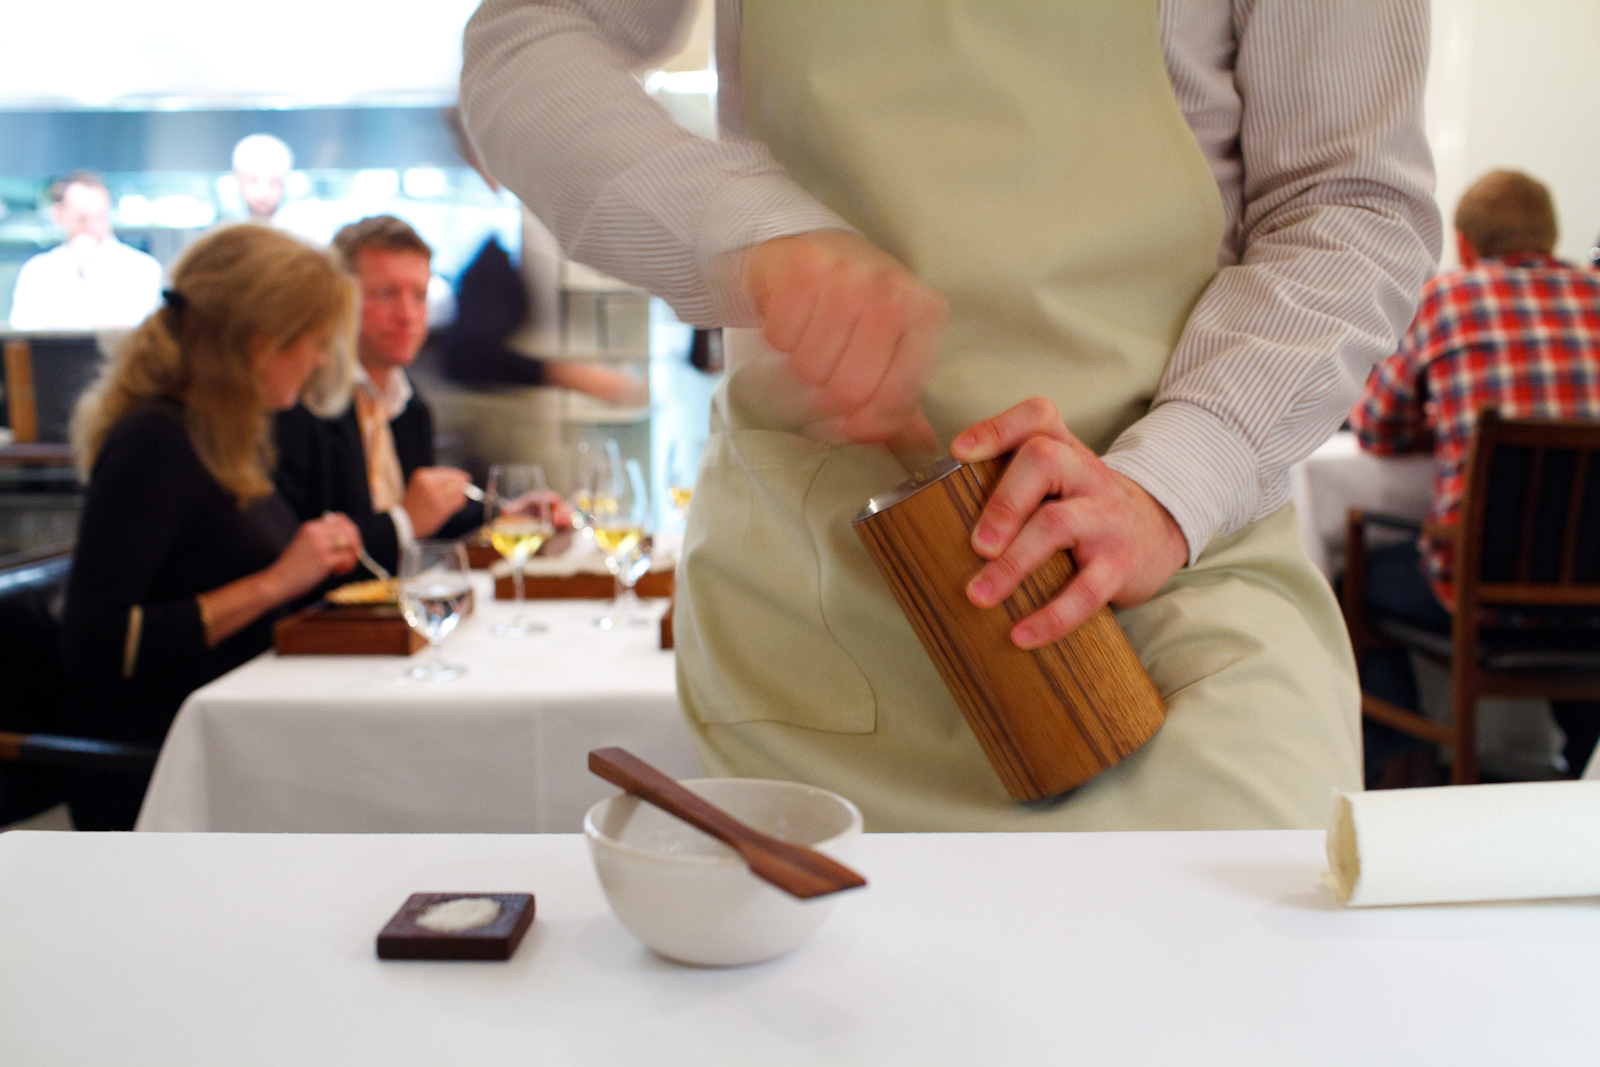 Churning butter tableside in a pool of its own buttermilk